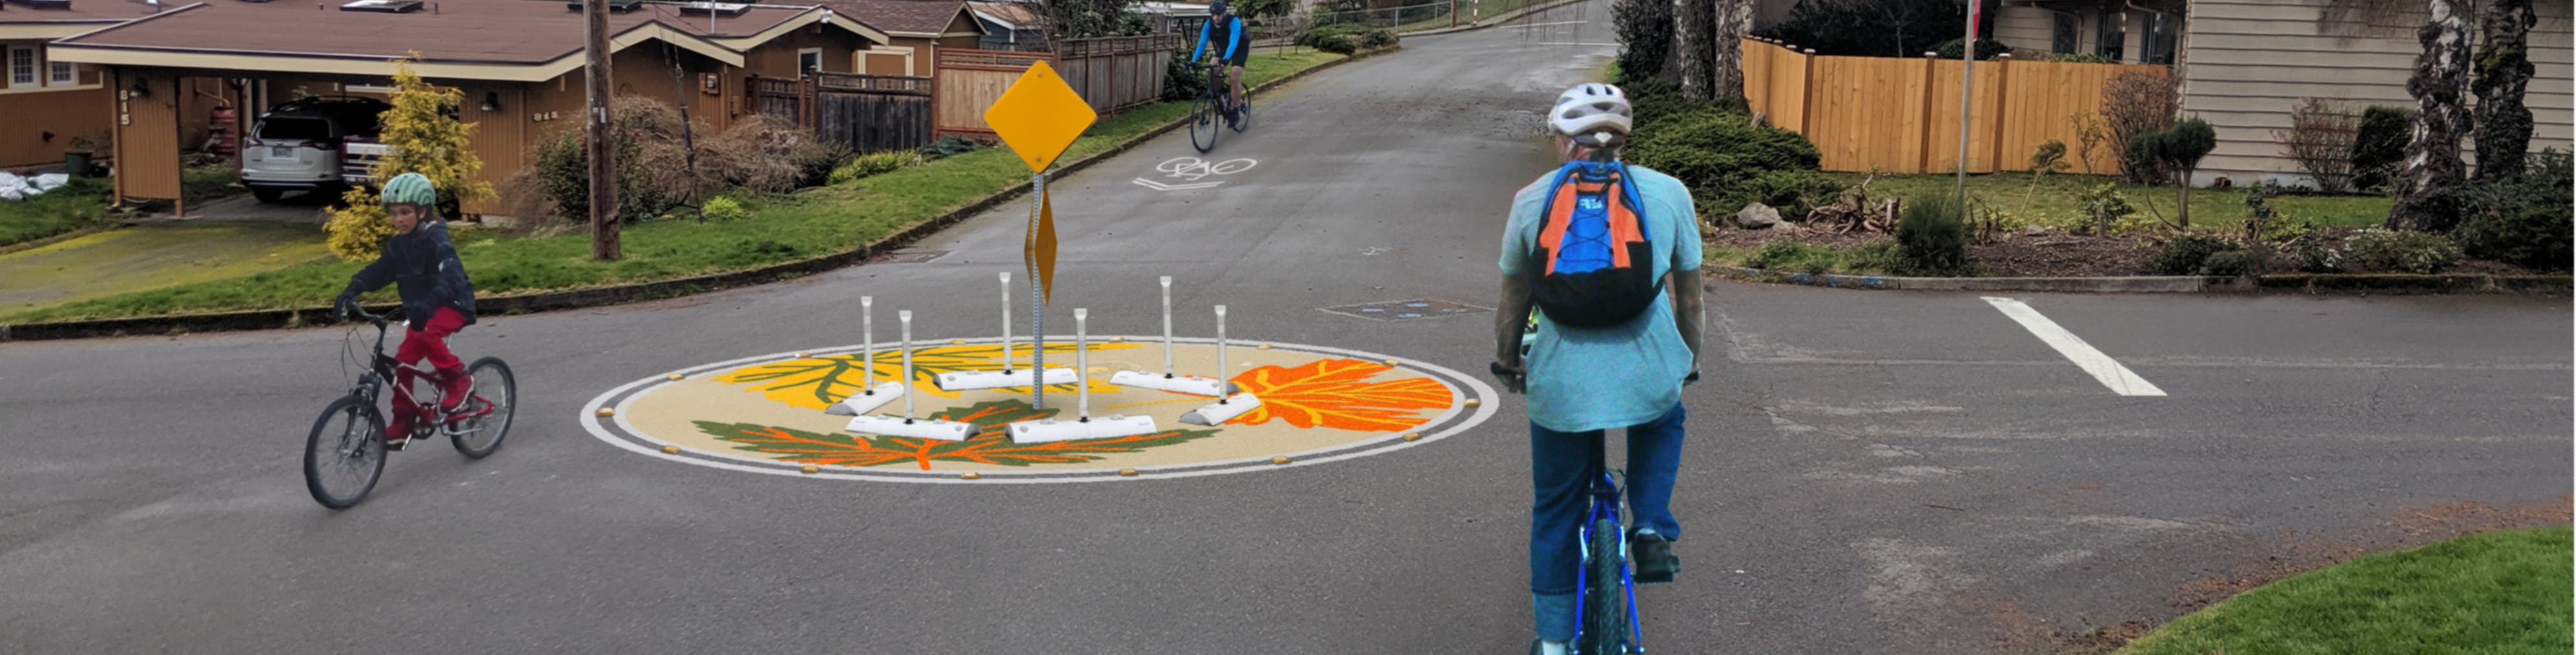 Three people riding bicycles on a street with the proposed decorative traffic circle treatment.